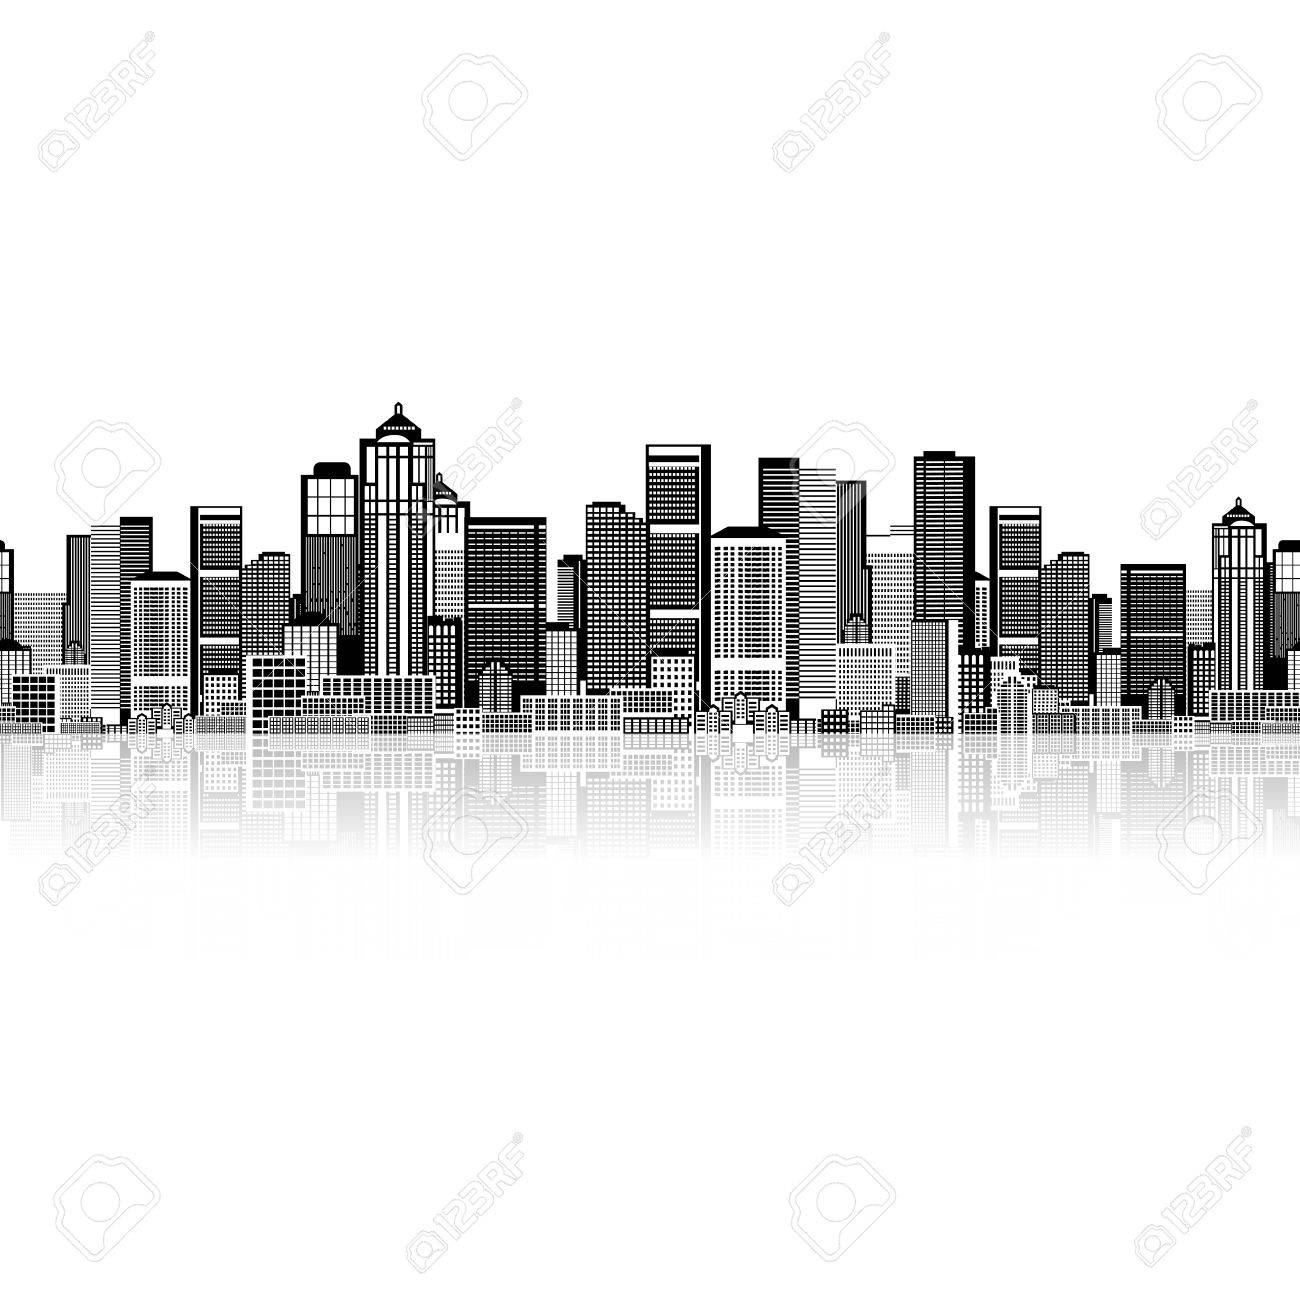 Cityscape seamless background for your design, urban art Stock Photo - 9478454